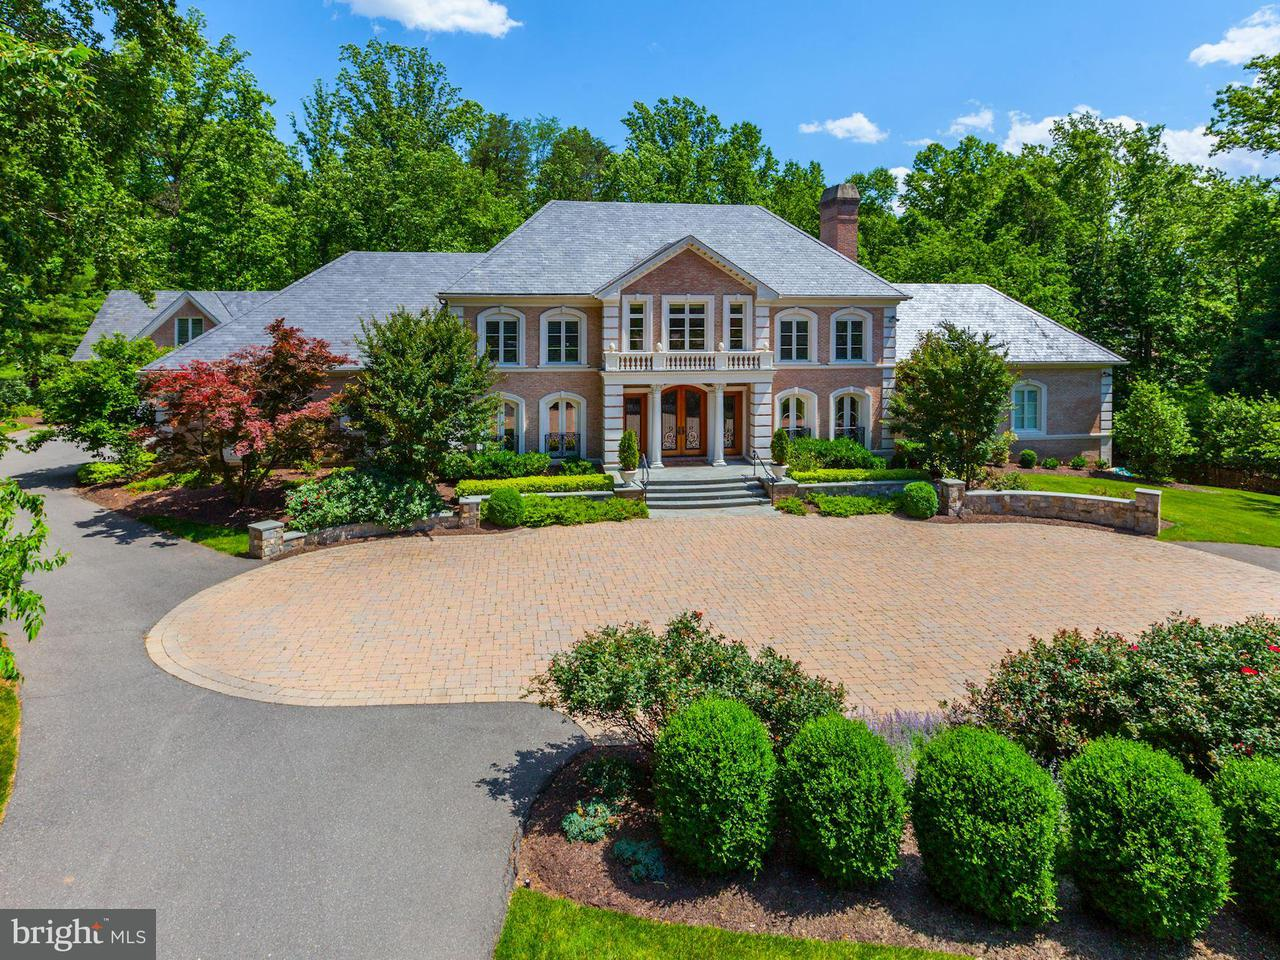 Single Family Home for Sale at 10007 BENTCROSS Drive 10007 BENTCROSS Drive Potomac, Maryland 20854 United States